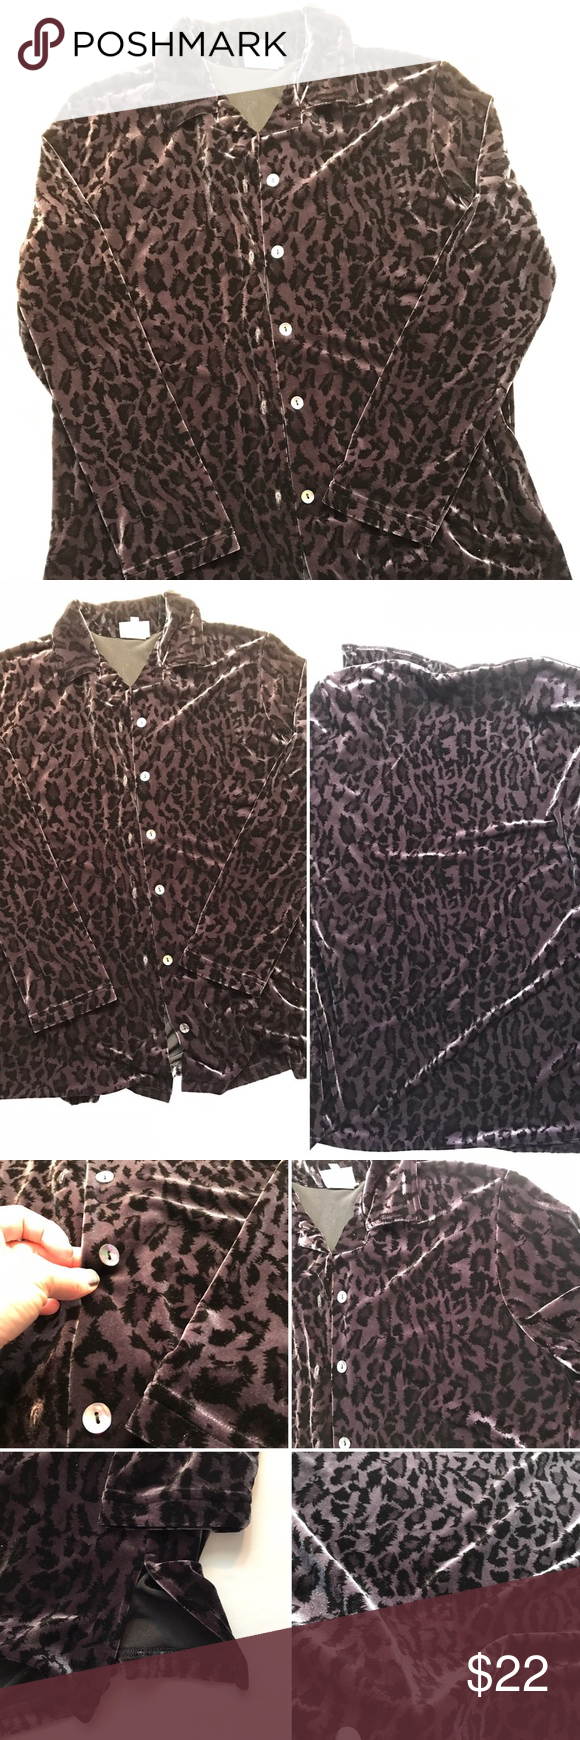 Hot Cotton blouse Hot cotton blouse velvet leopard print dark gray and black. Where it is more of a purpleish color is very cool. Please see photos for tags with size, materials and washing instructions.🚭 Hot Cotton Tops Blouses